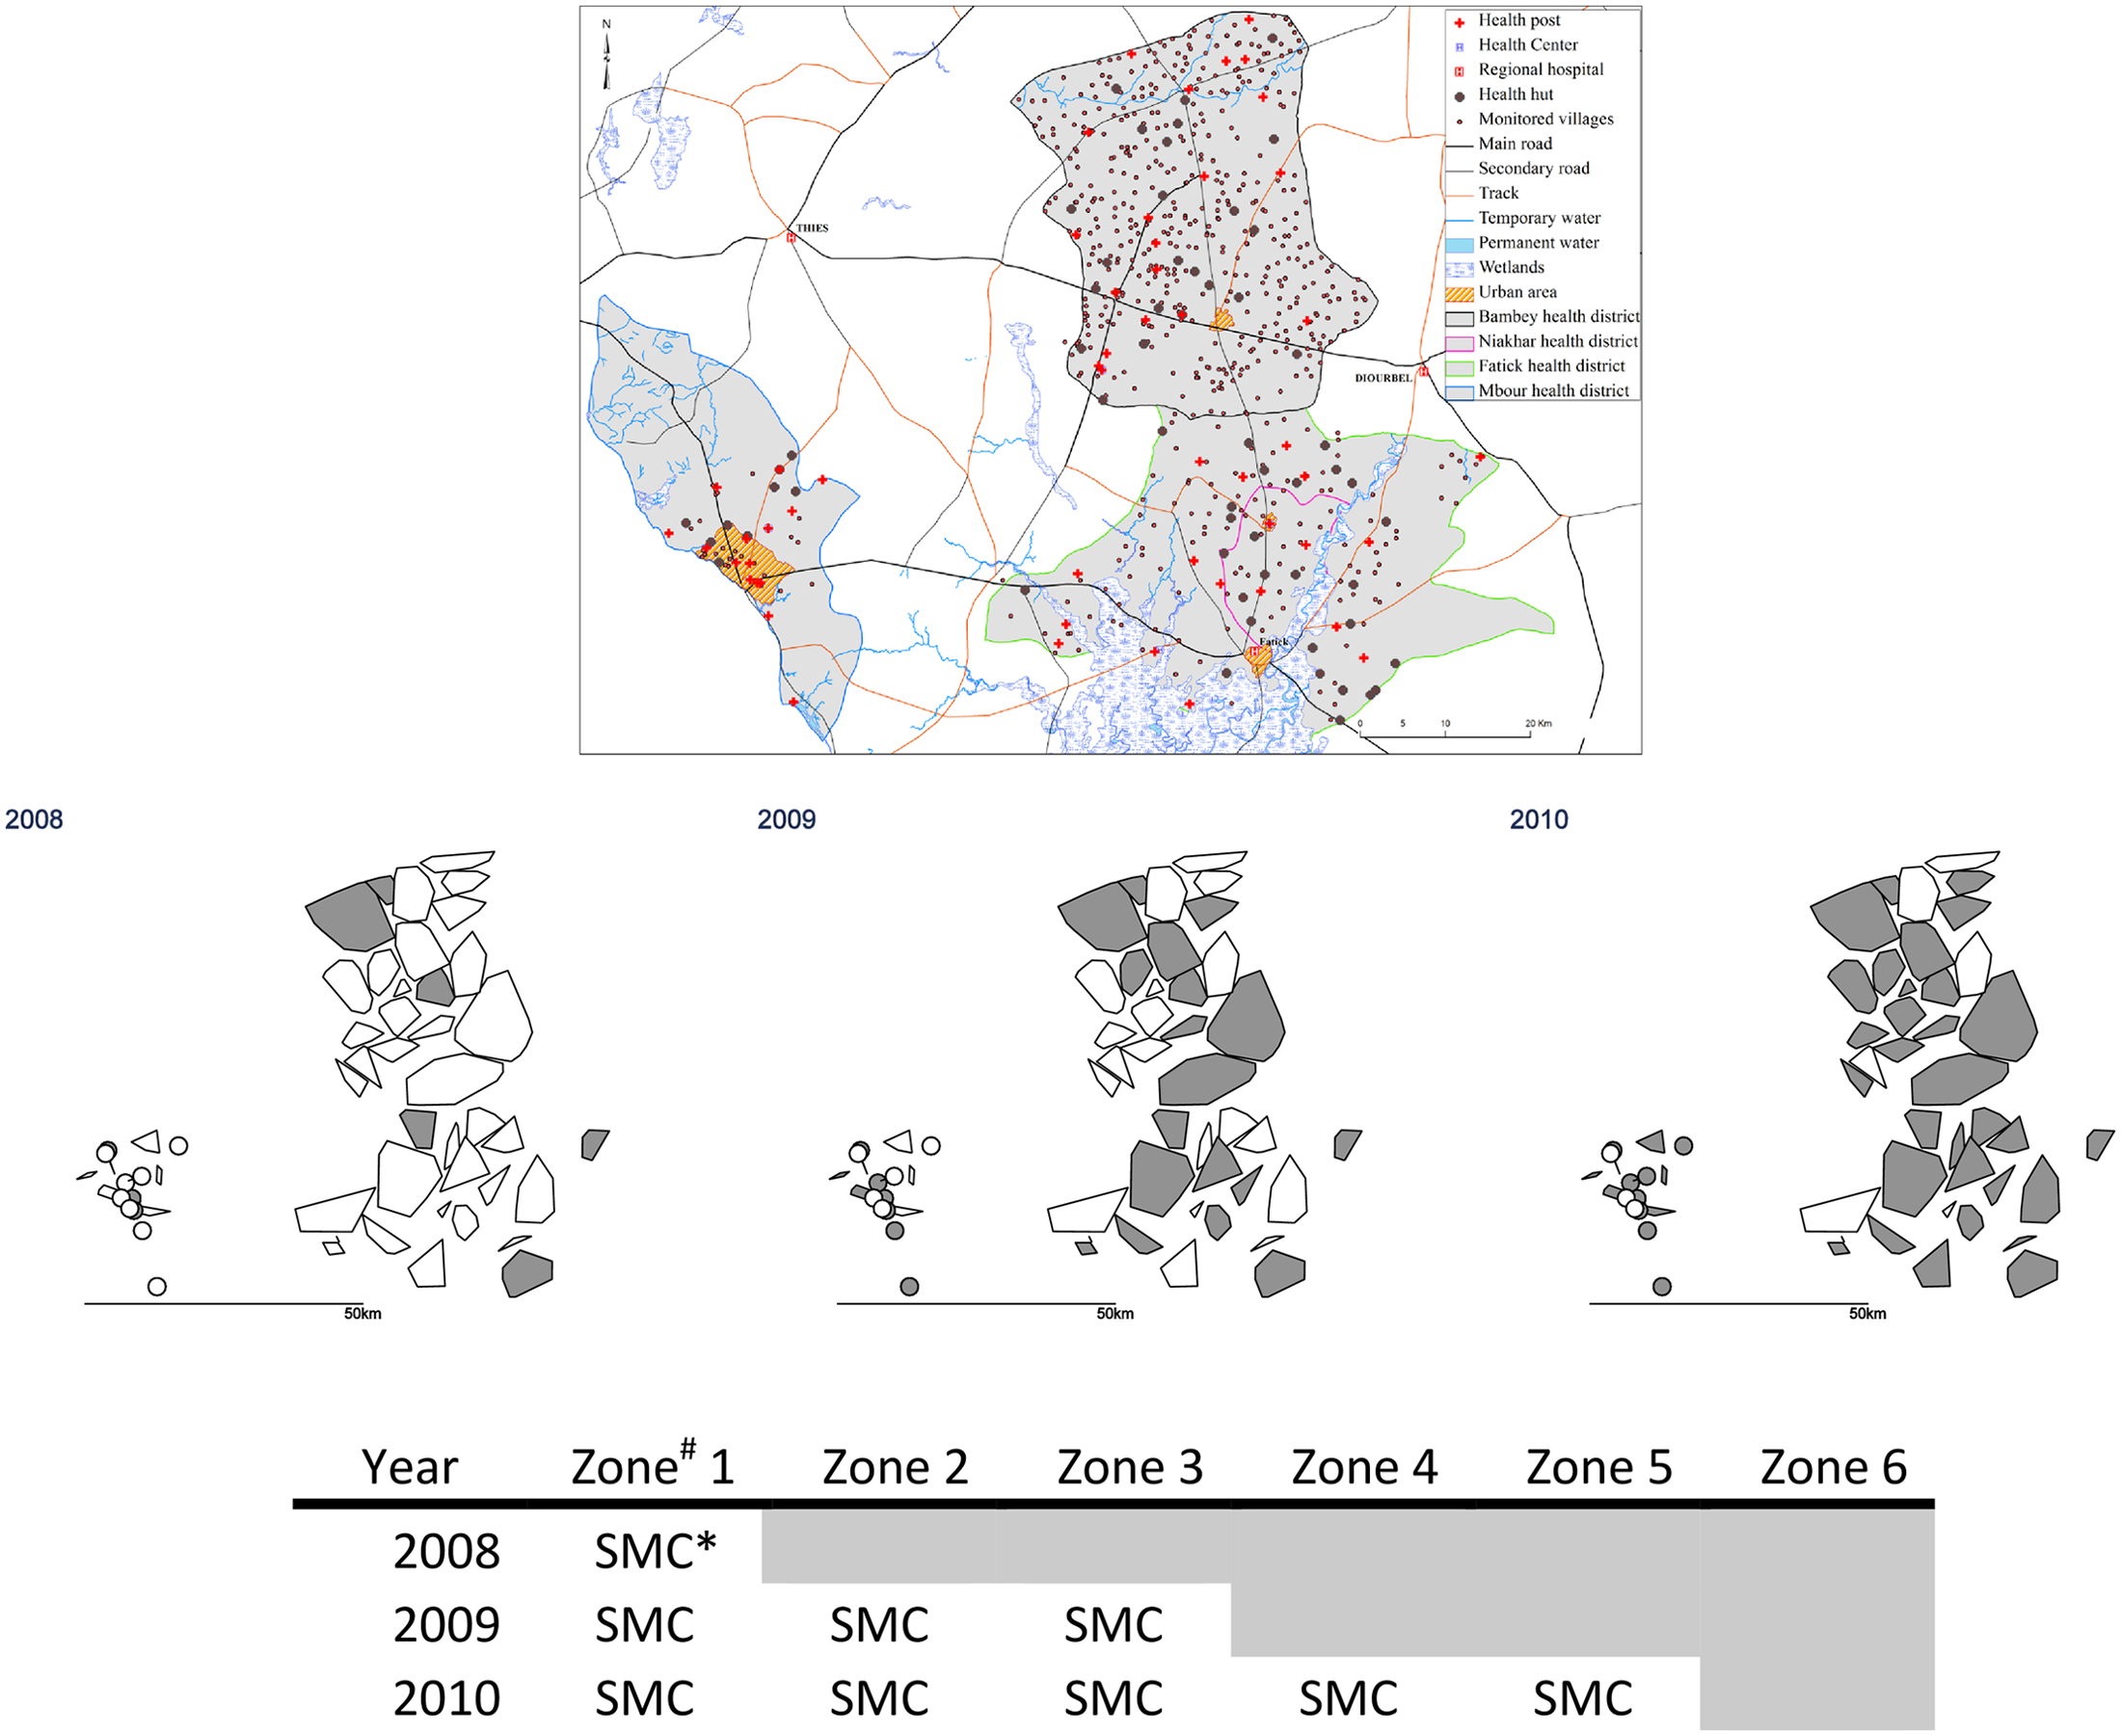 Stepped-wedge introduction of SMC in 45 health post areas over three years.